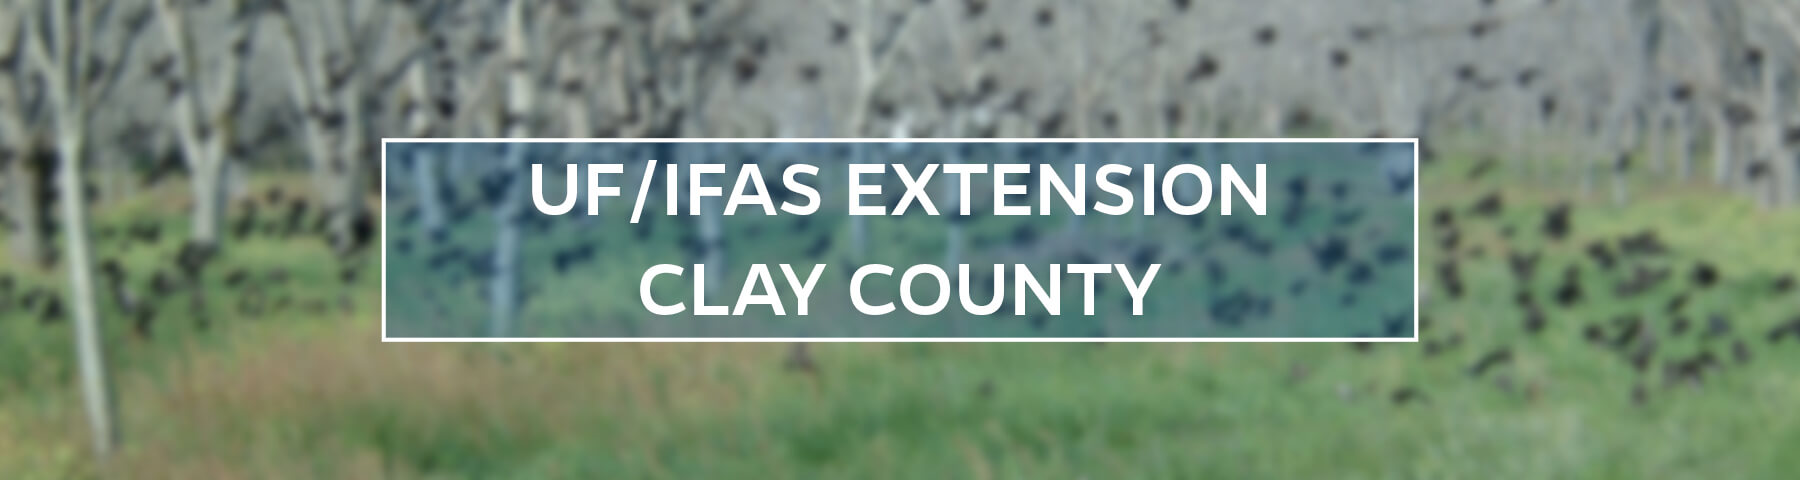 UF/IFAS Extension Clay County